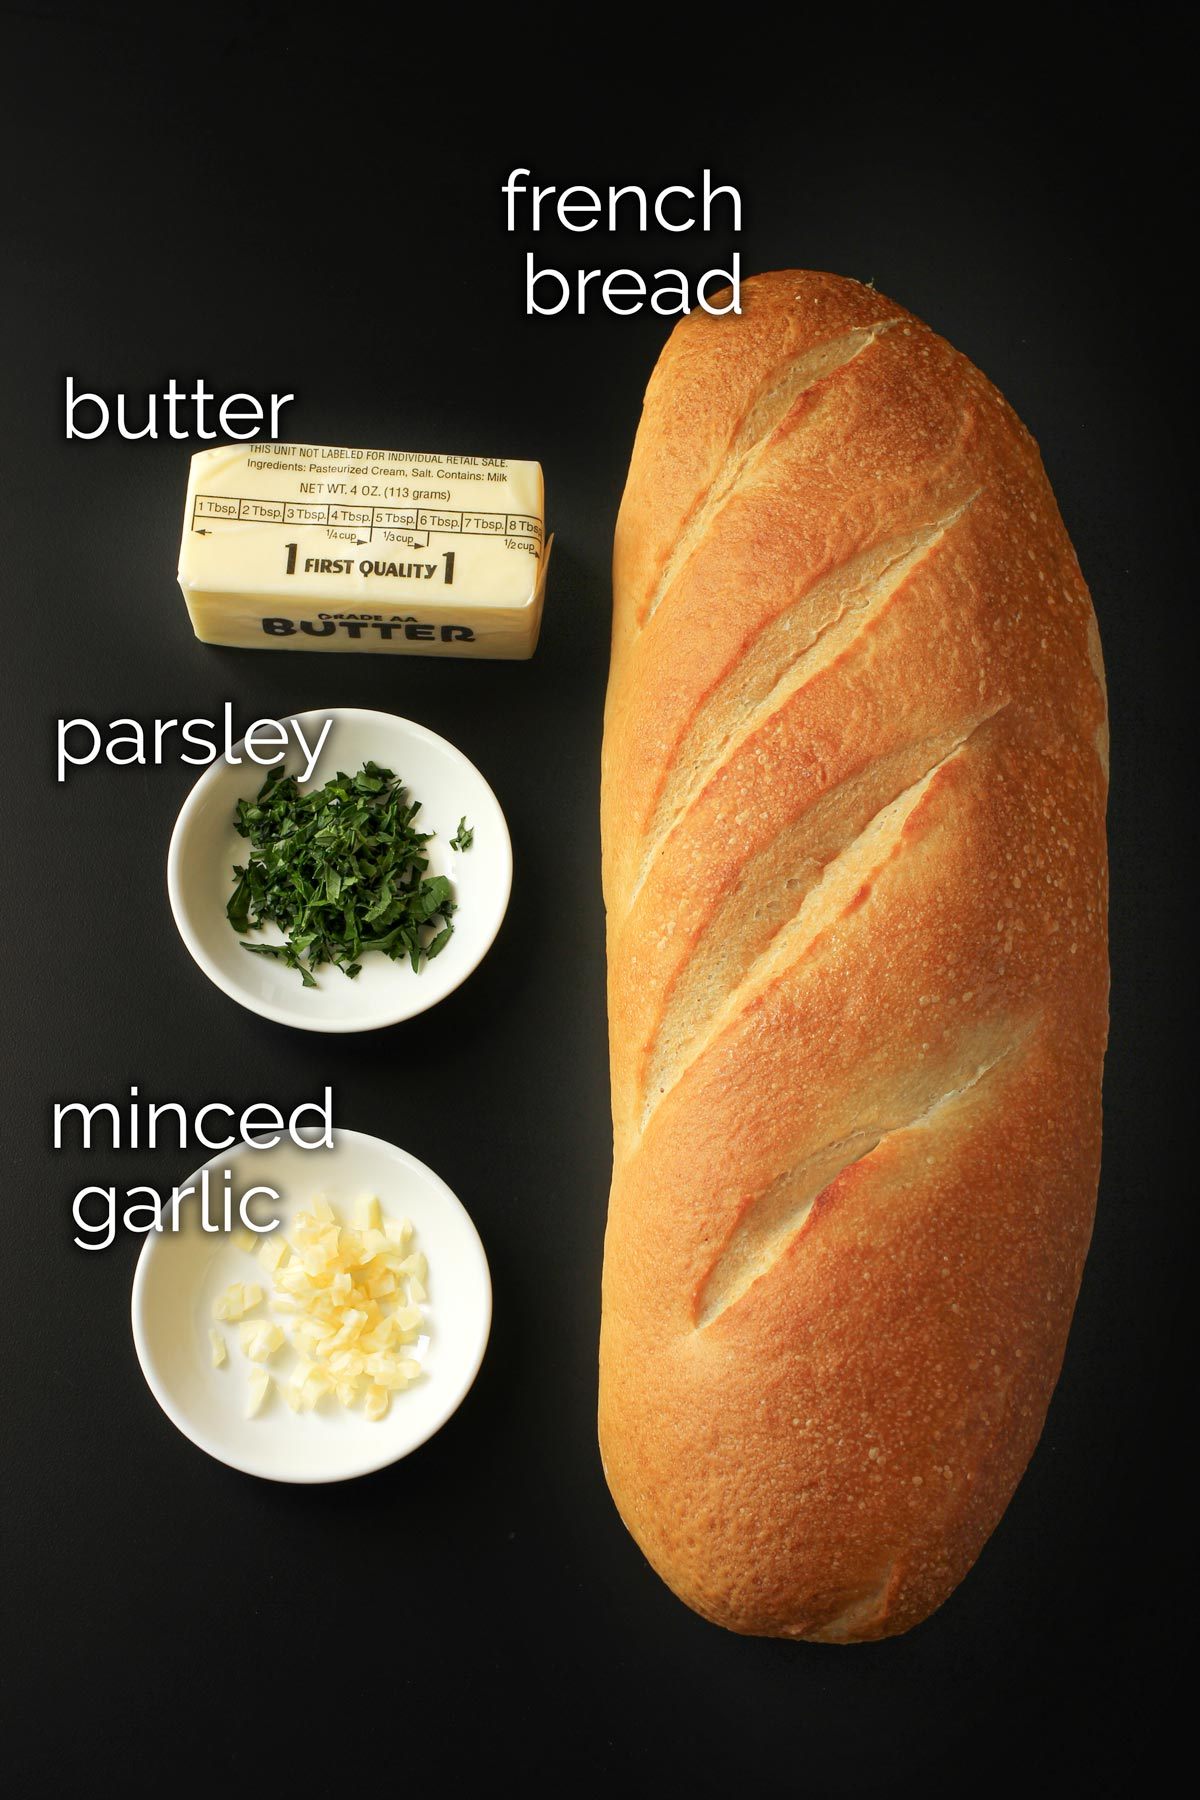 ingredients for frozen garlic bread laid out on black table top.